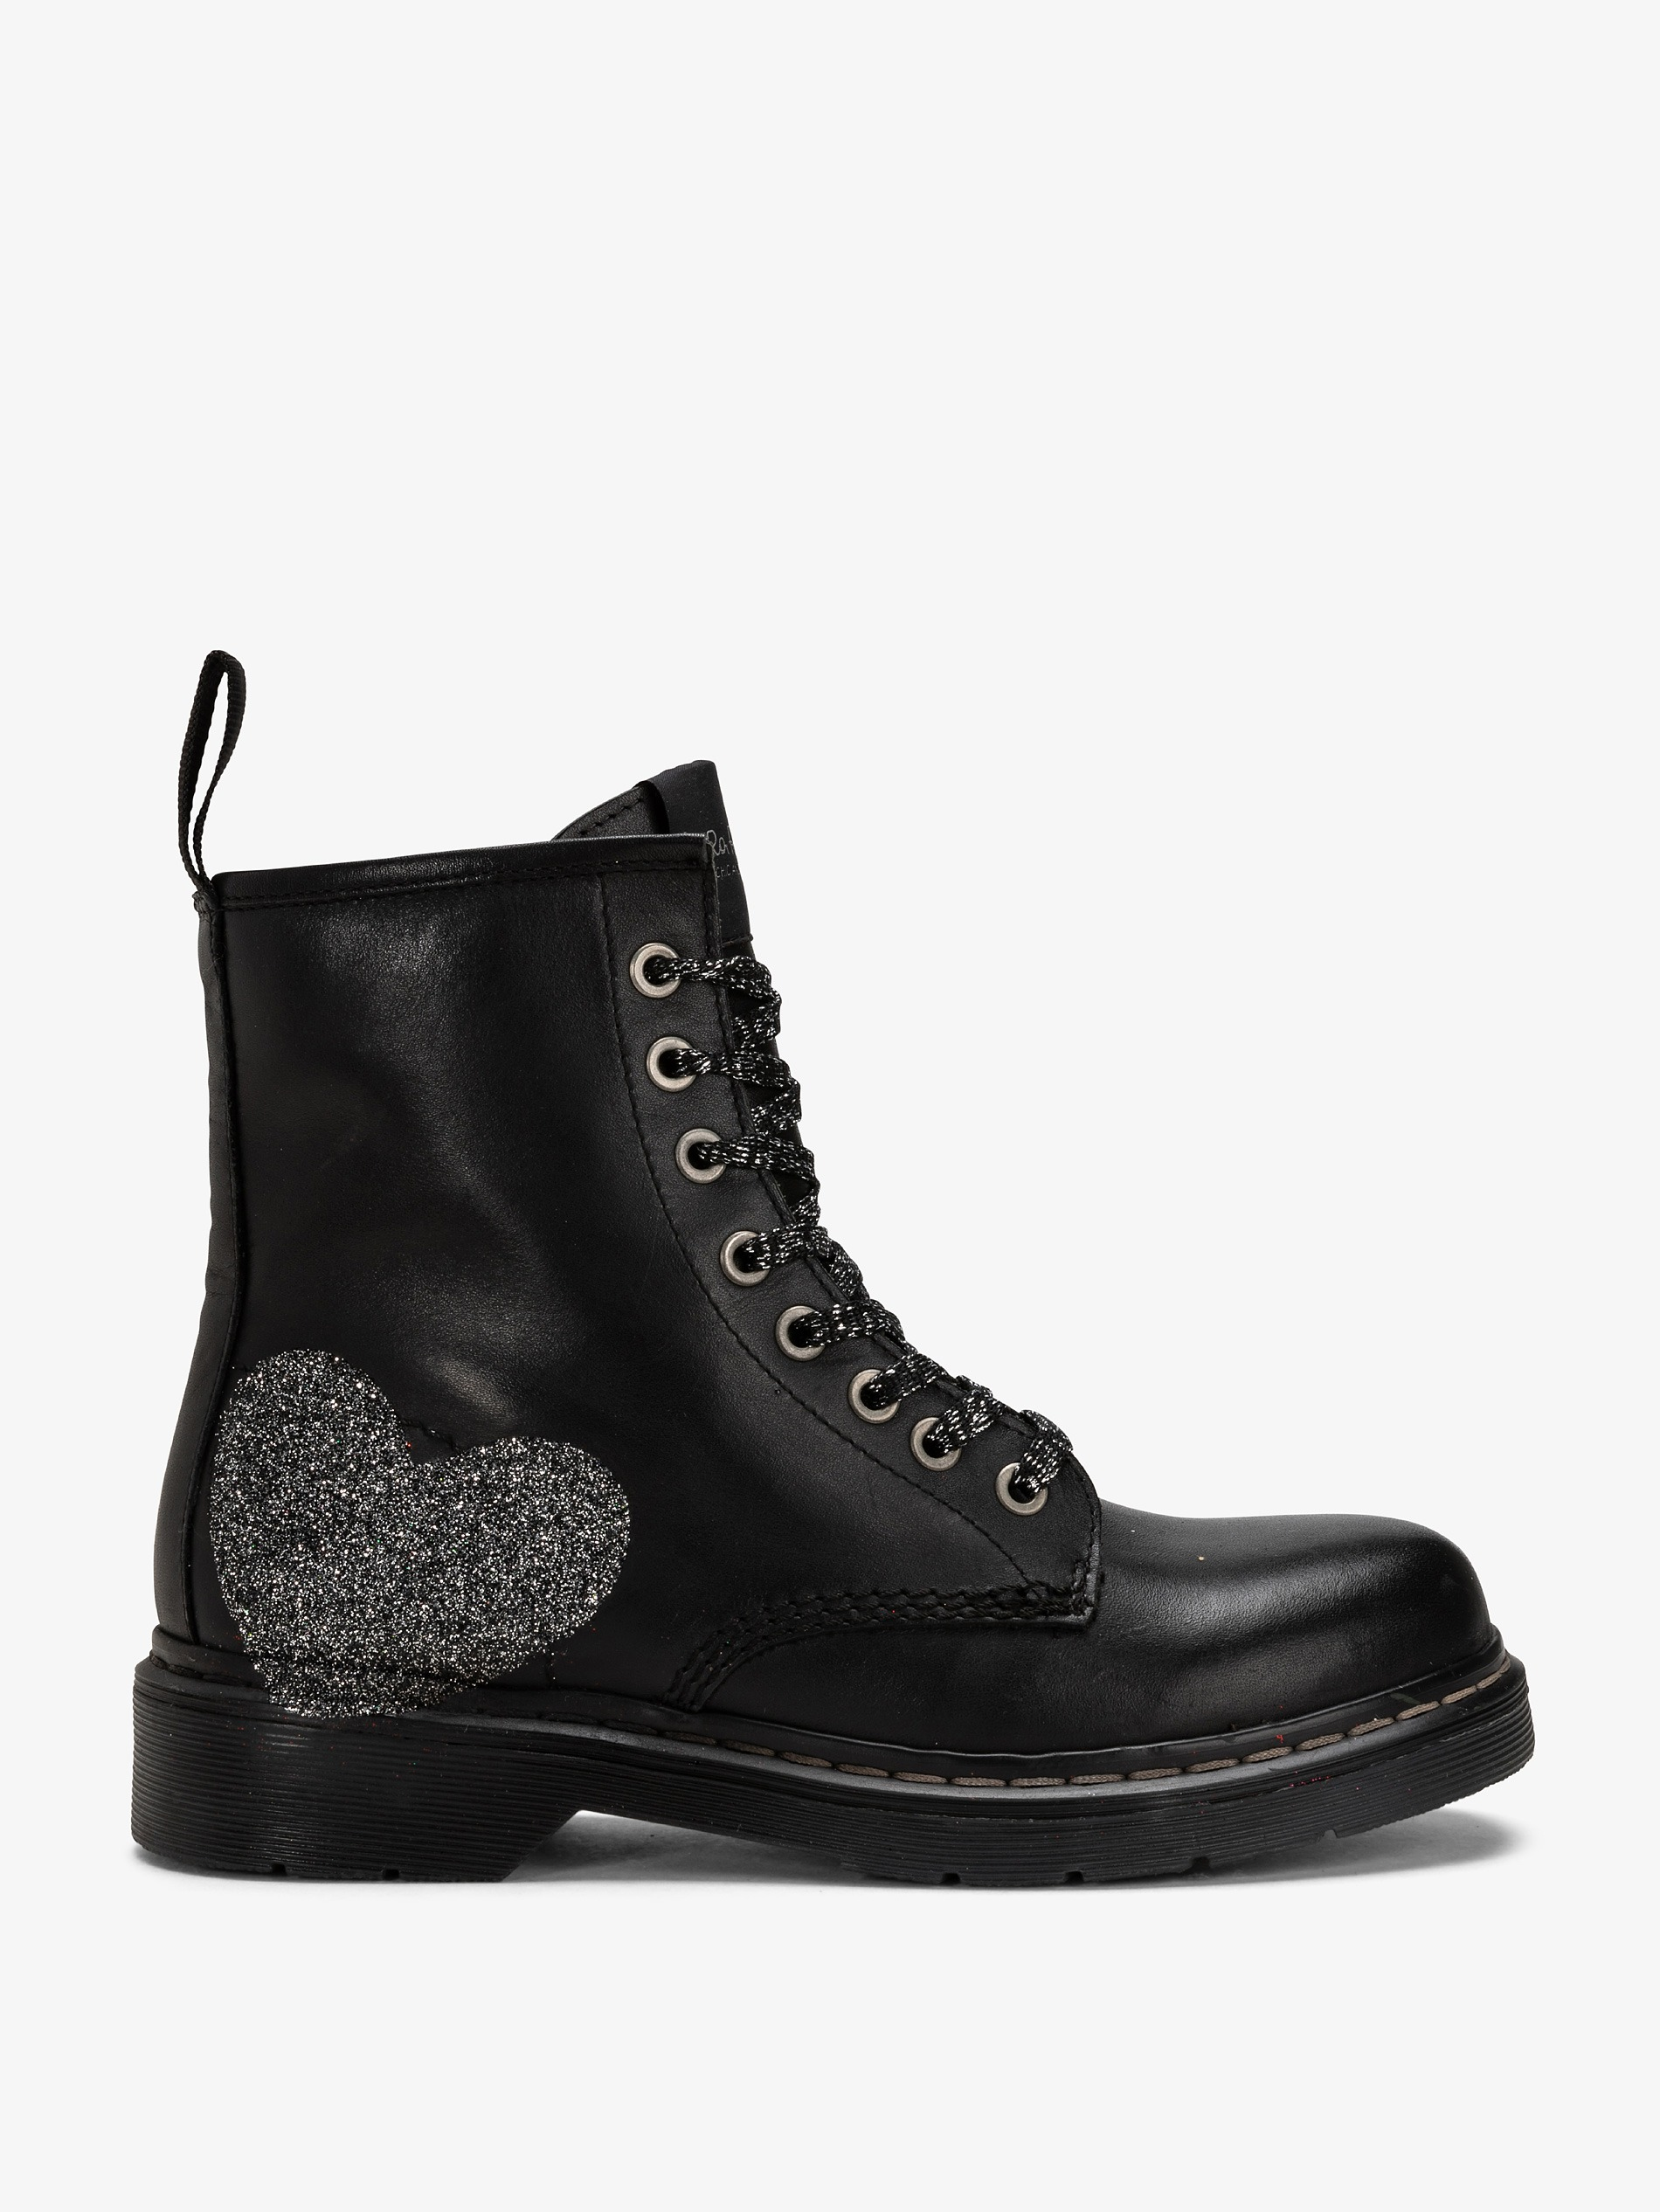 8333dbe6b7e Lace up boots hand painted with silver glittery heart